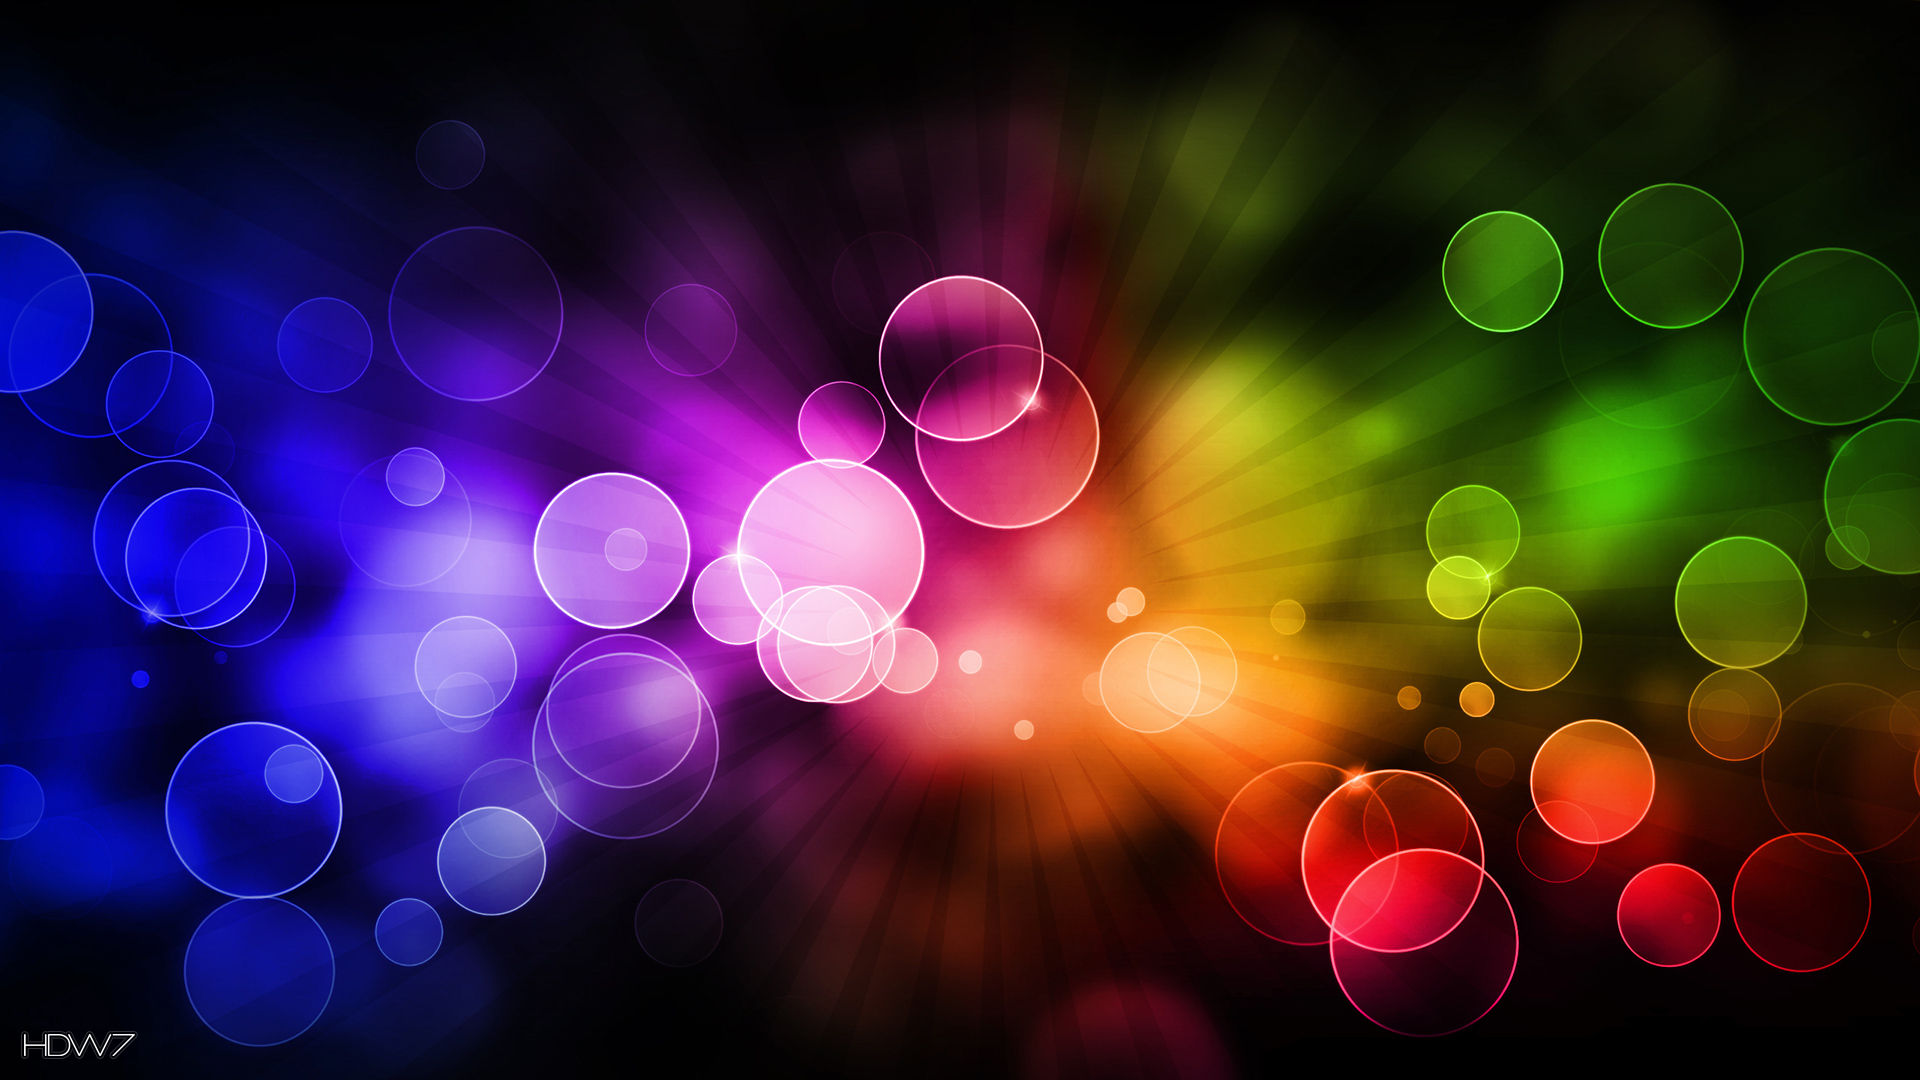 Free Wallpapers Background bokeh abstract background free